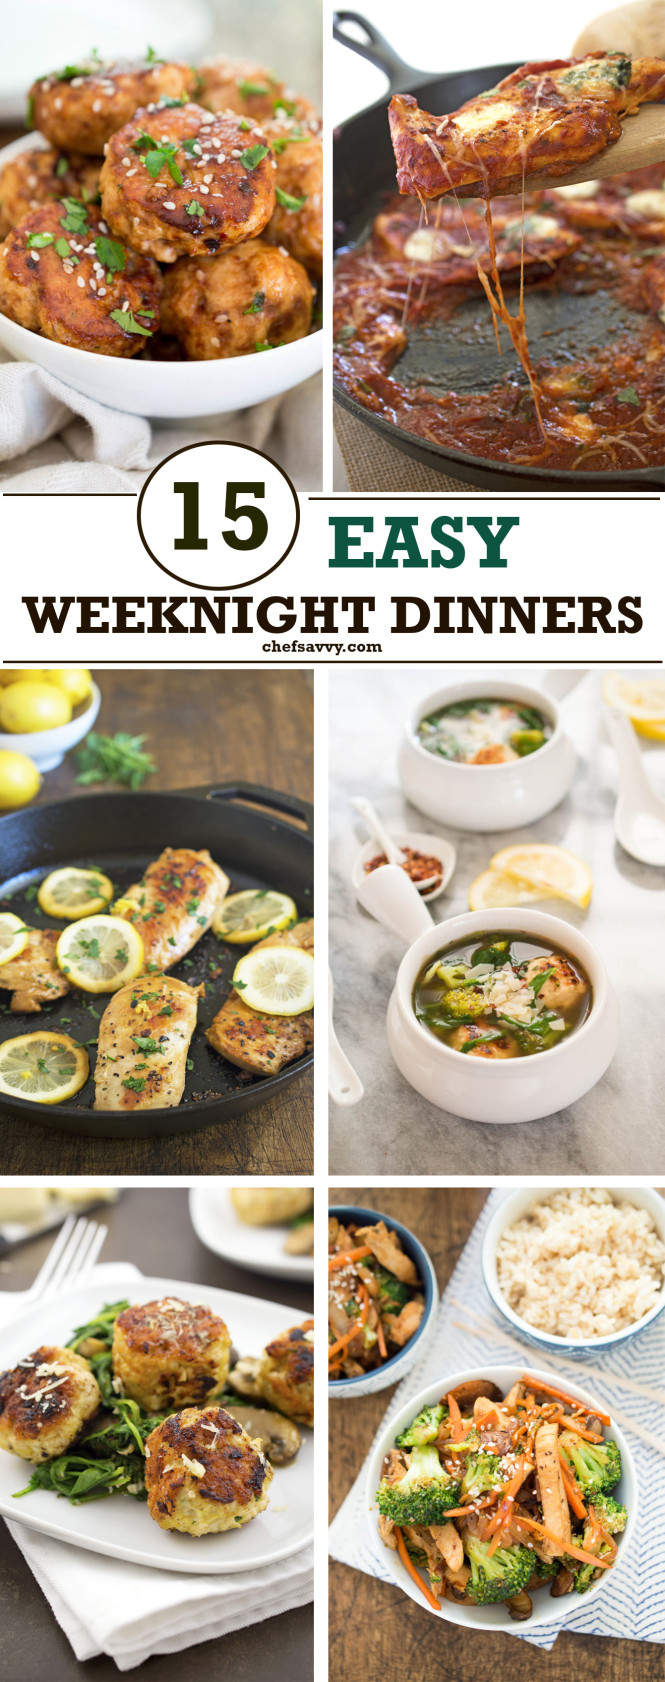 15 Easy Weeknight Dinner by chefsavvy.com